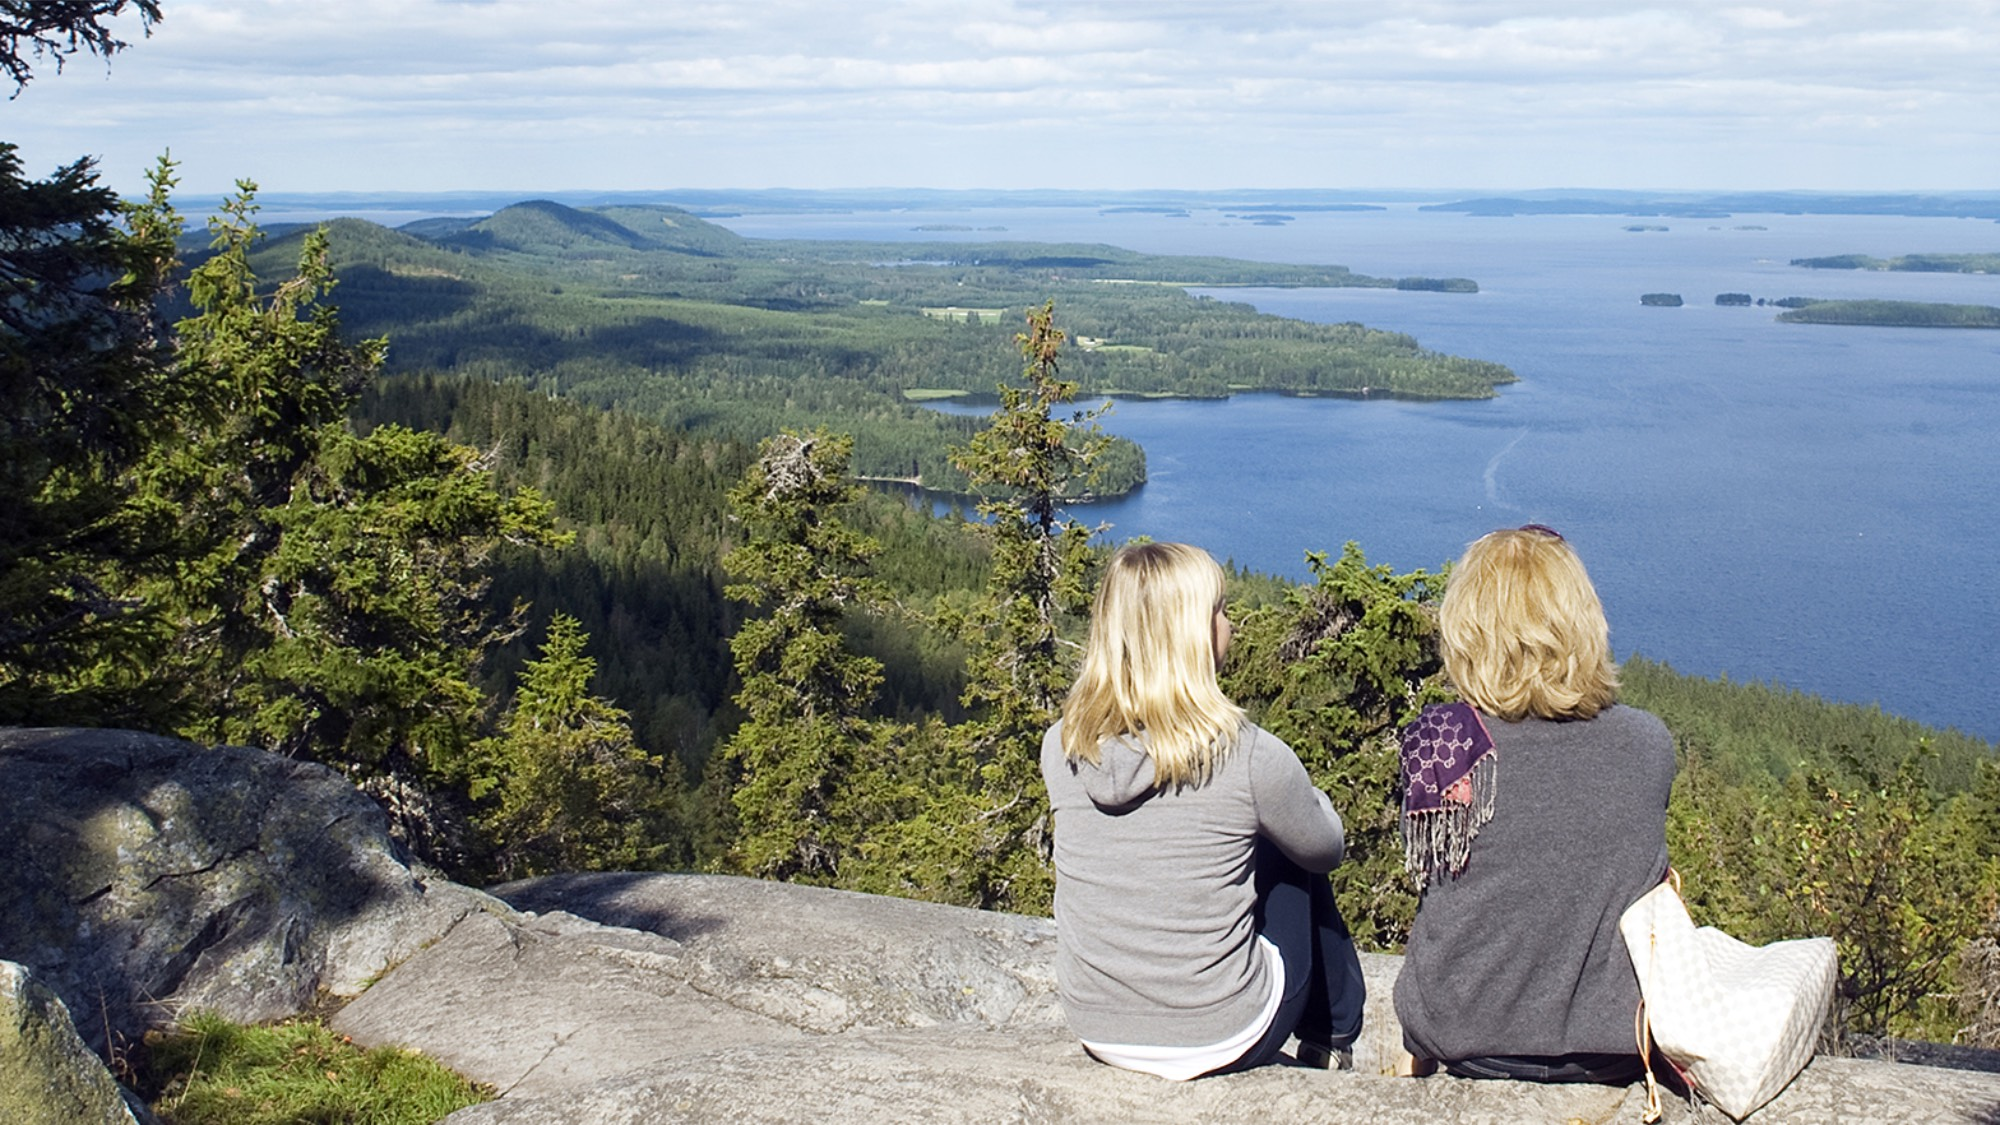 Two women sitting on a cliff overlooking a big lake